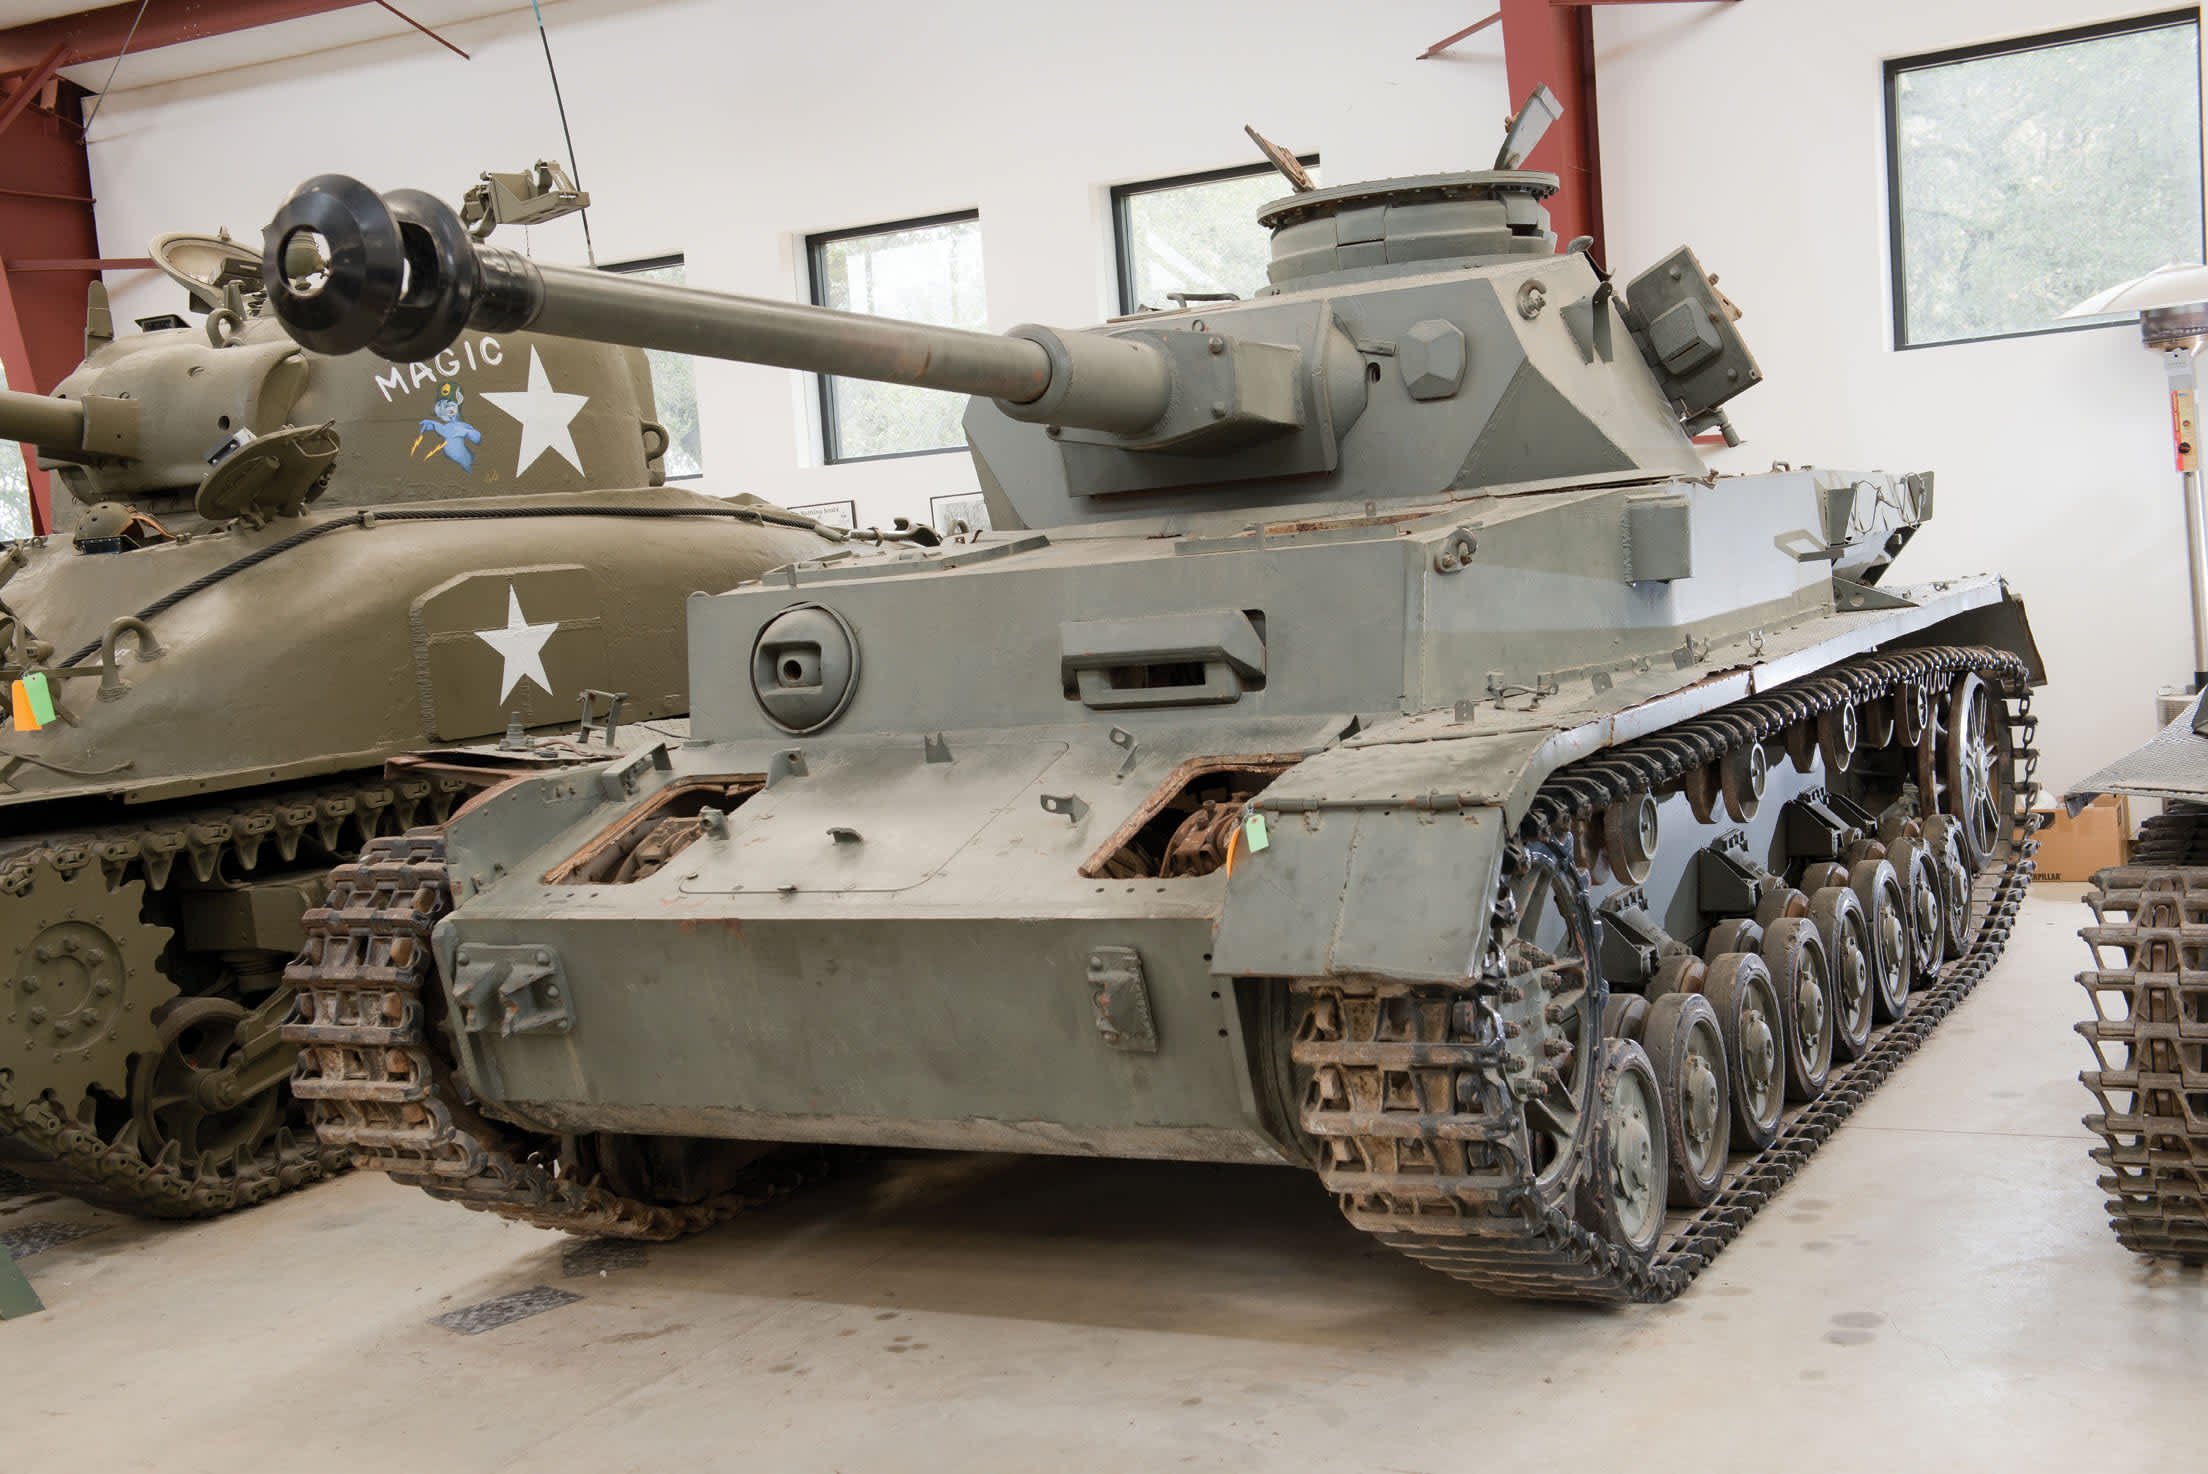 Military Tanks For Sale >> Fleet Of Military Tanks Up For Auction